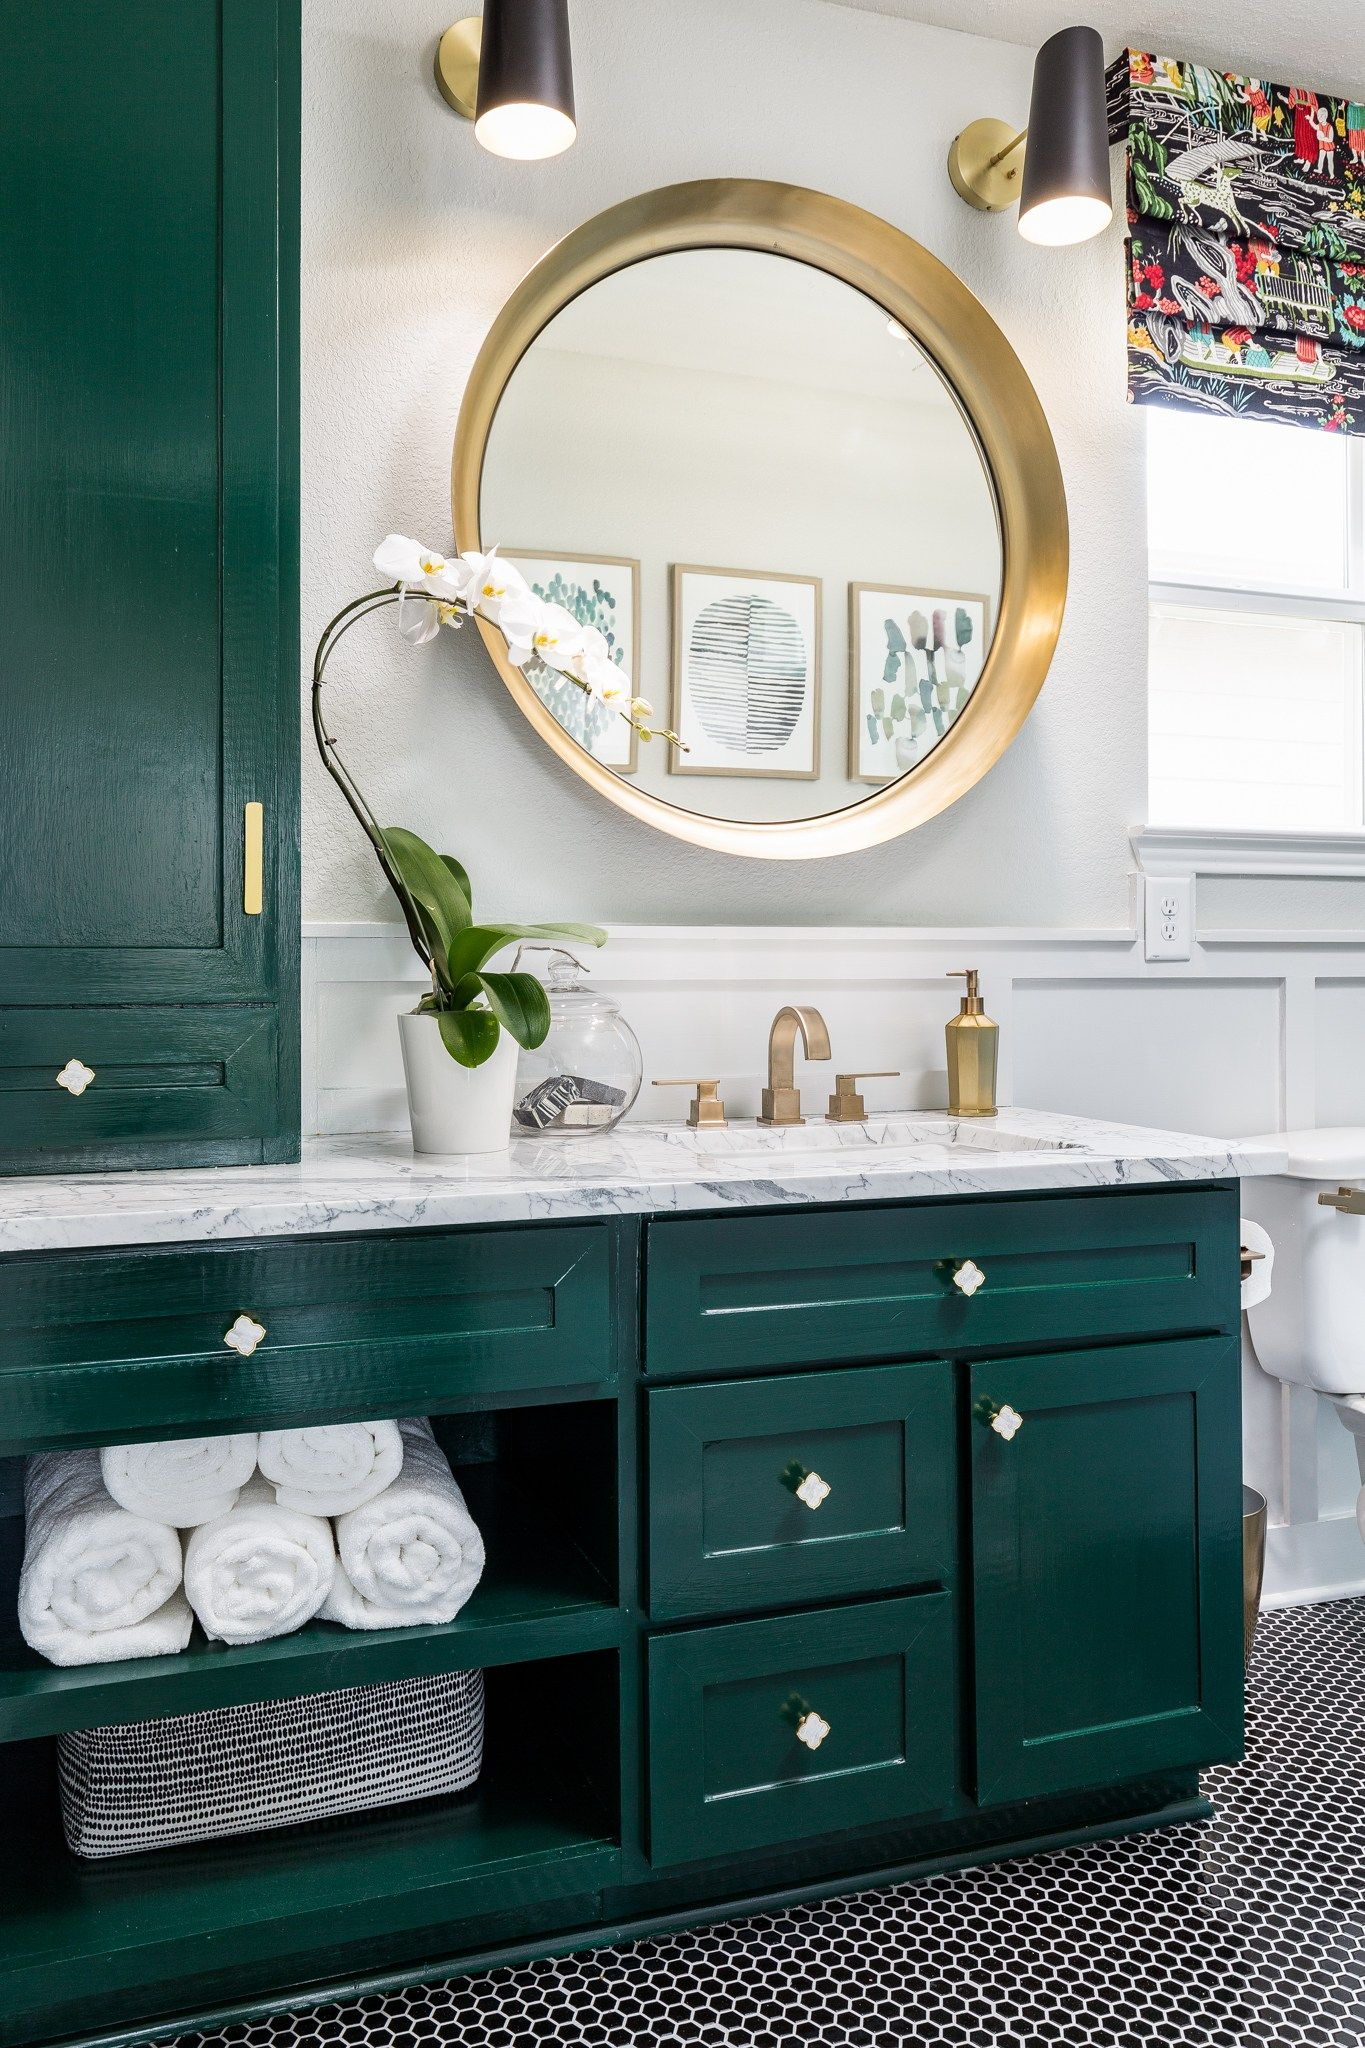 Guest Bathroom Makeover One Room Challenge Green Gold Orchid Roundmirror Sconces Small Bathroom Decor Green Bathroom Bathroom Makeover